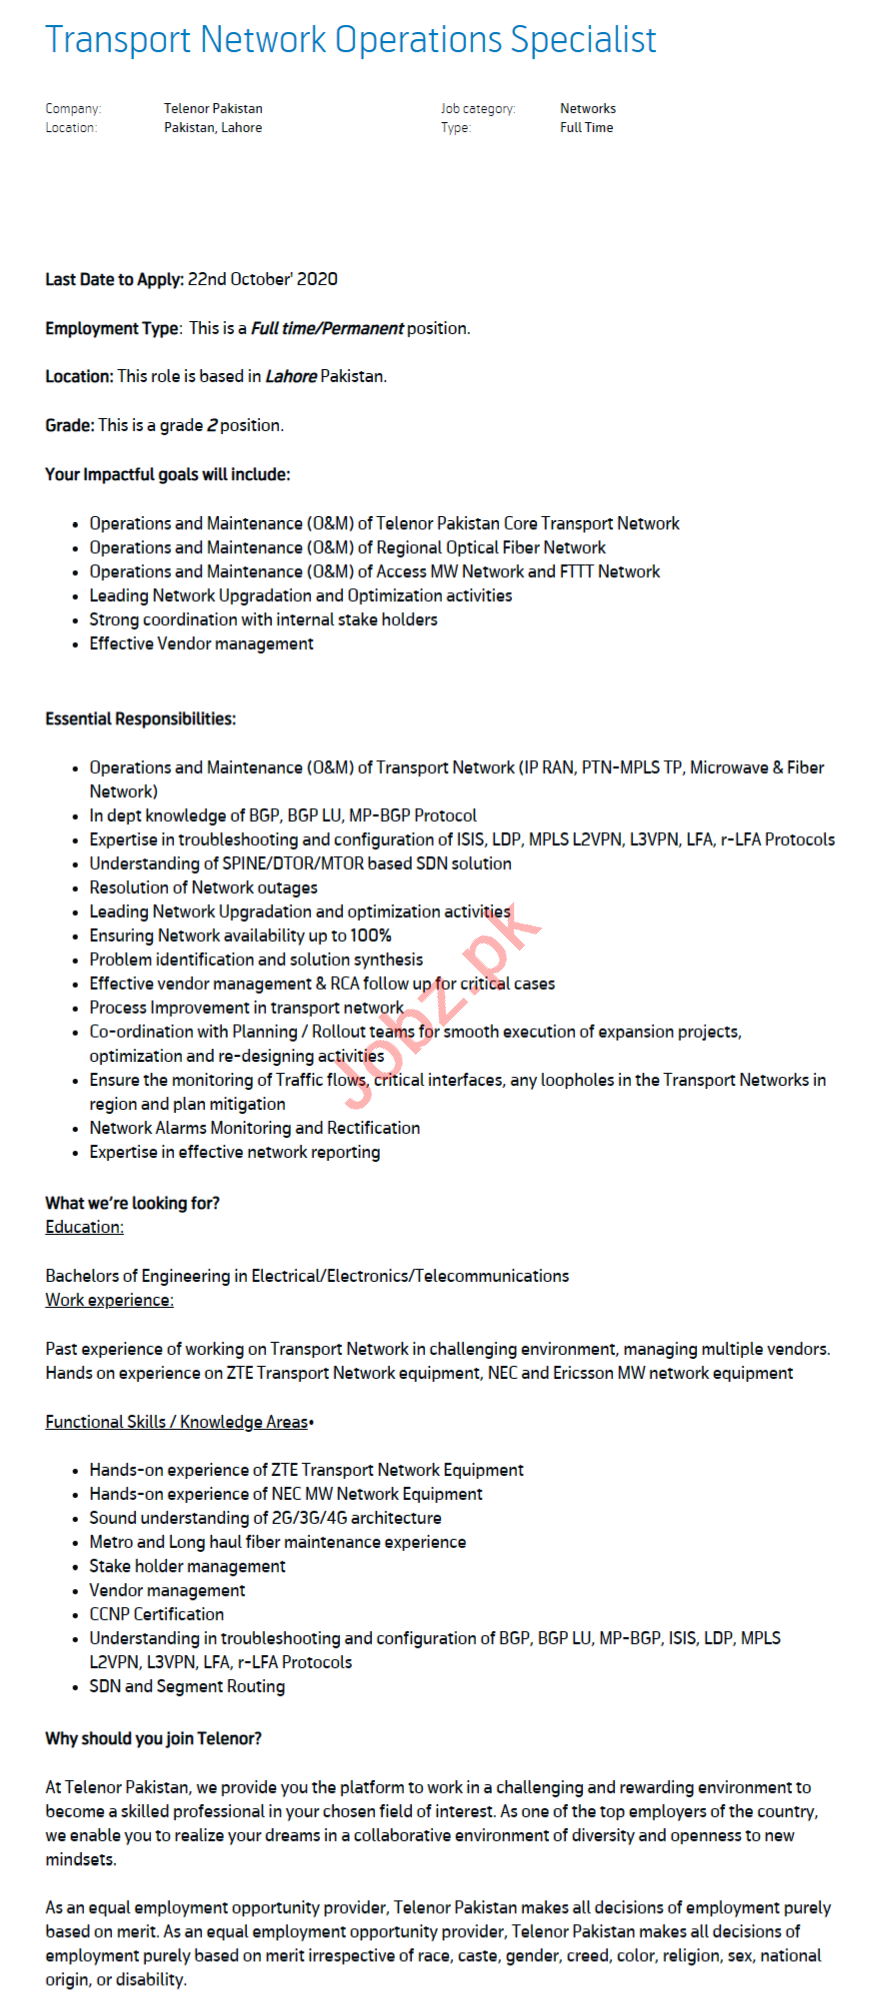 Transport Network Operations Specialist Jobs 2020 in Lahore